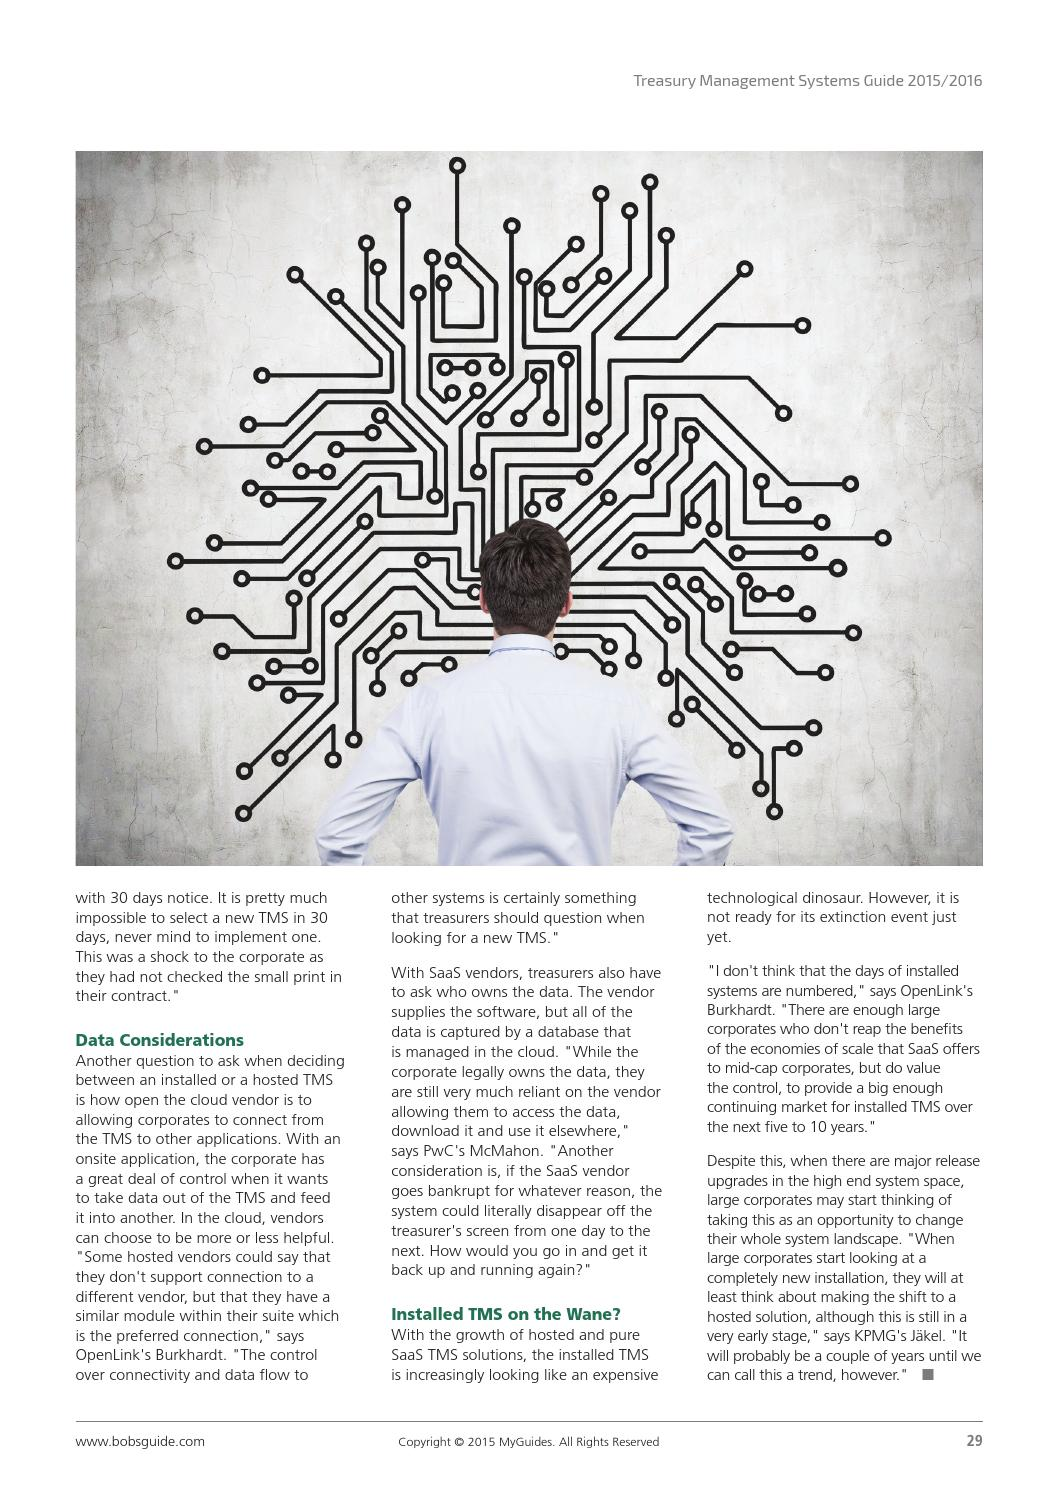 Treasury Management Systems Guide 2015/2016 by bobsguide - issuu